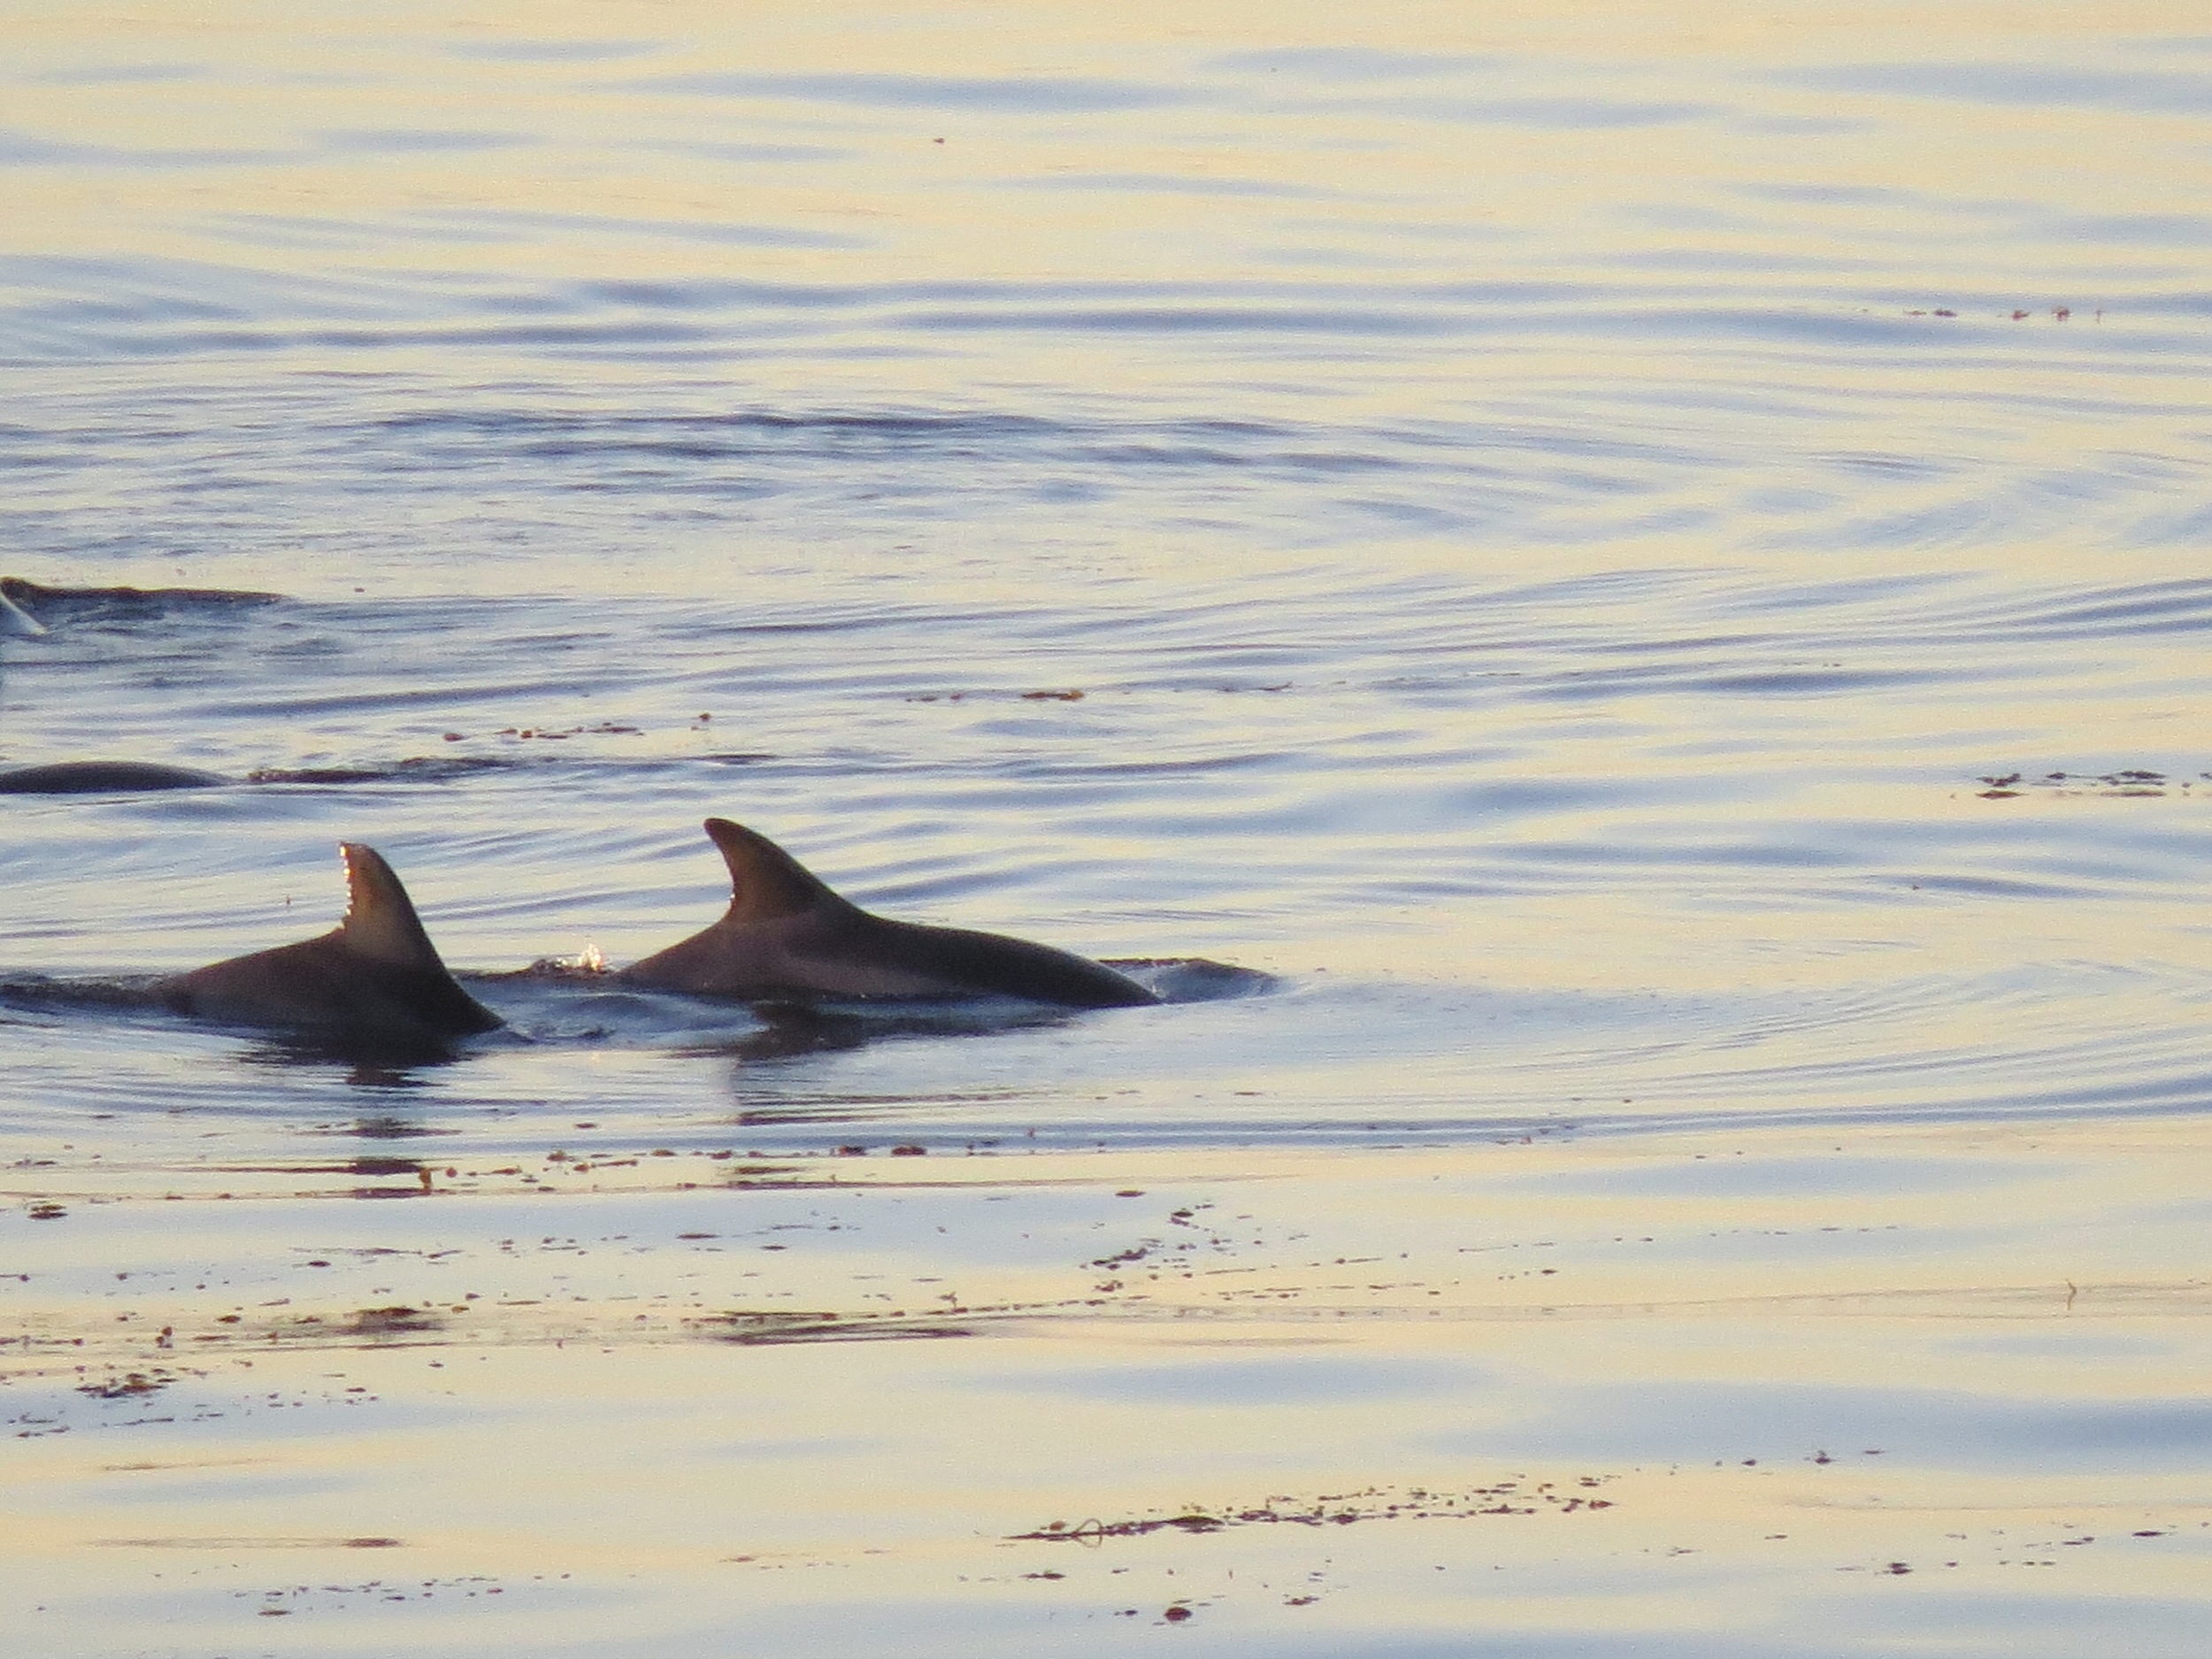 dolphins seen from paseo del mar